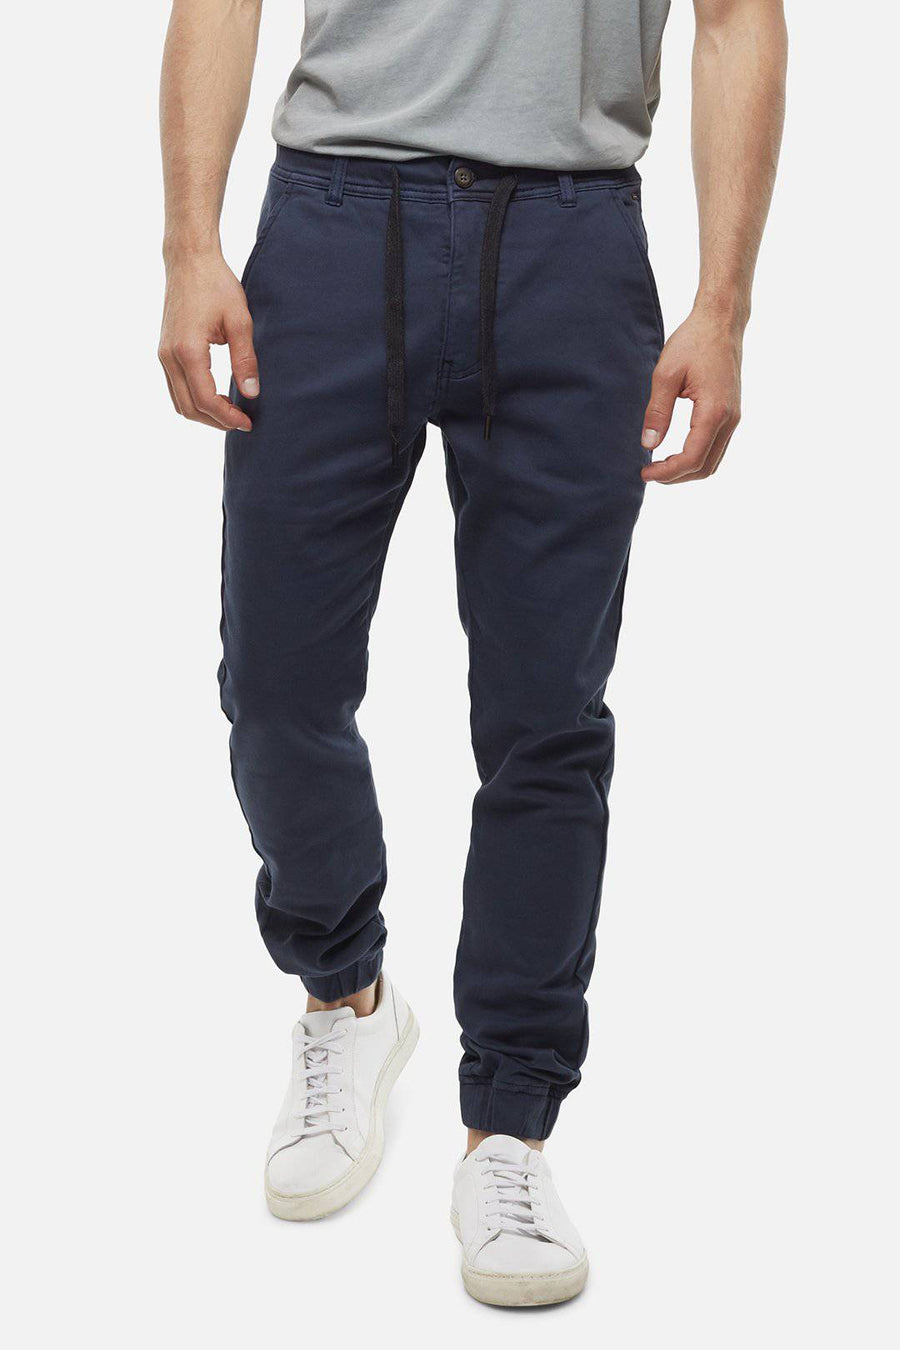 The Indigo Drifter Chinos - South of London